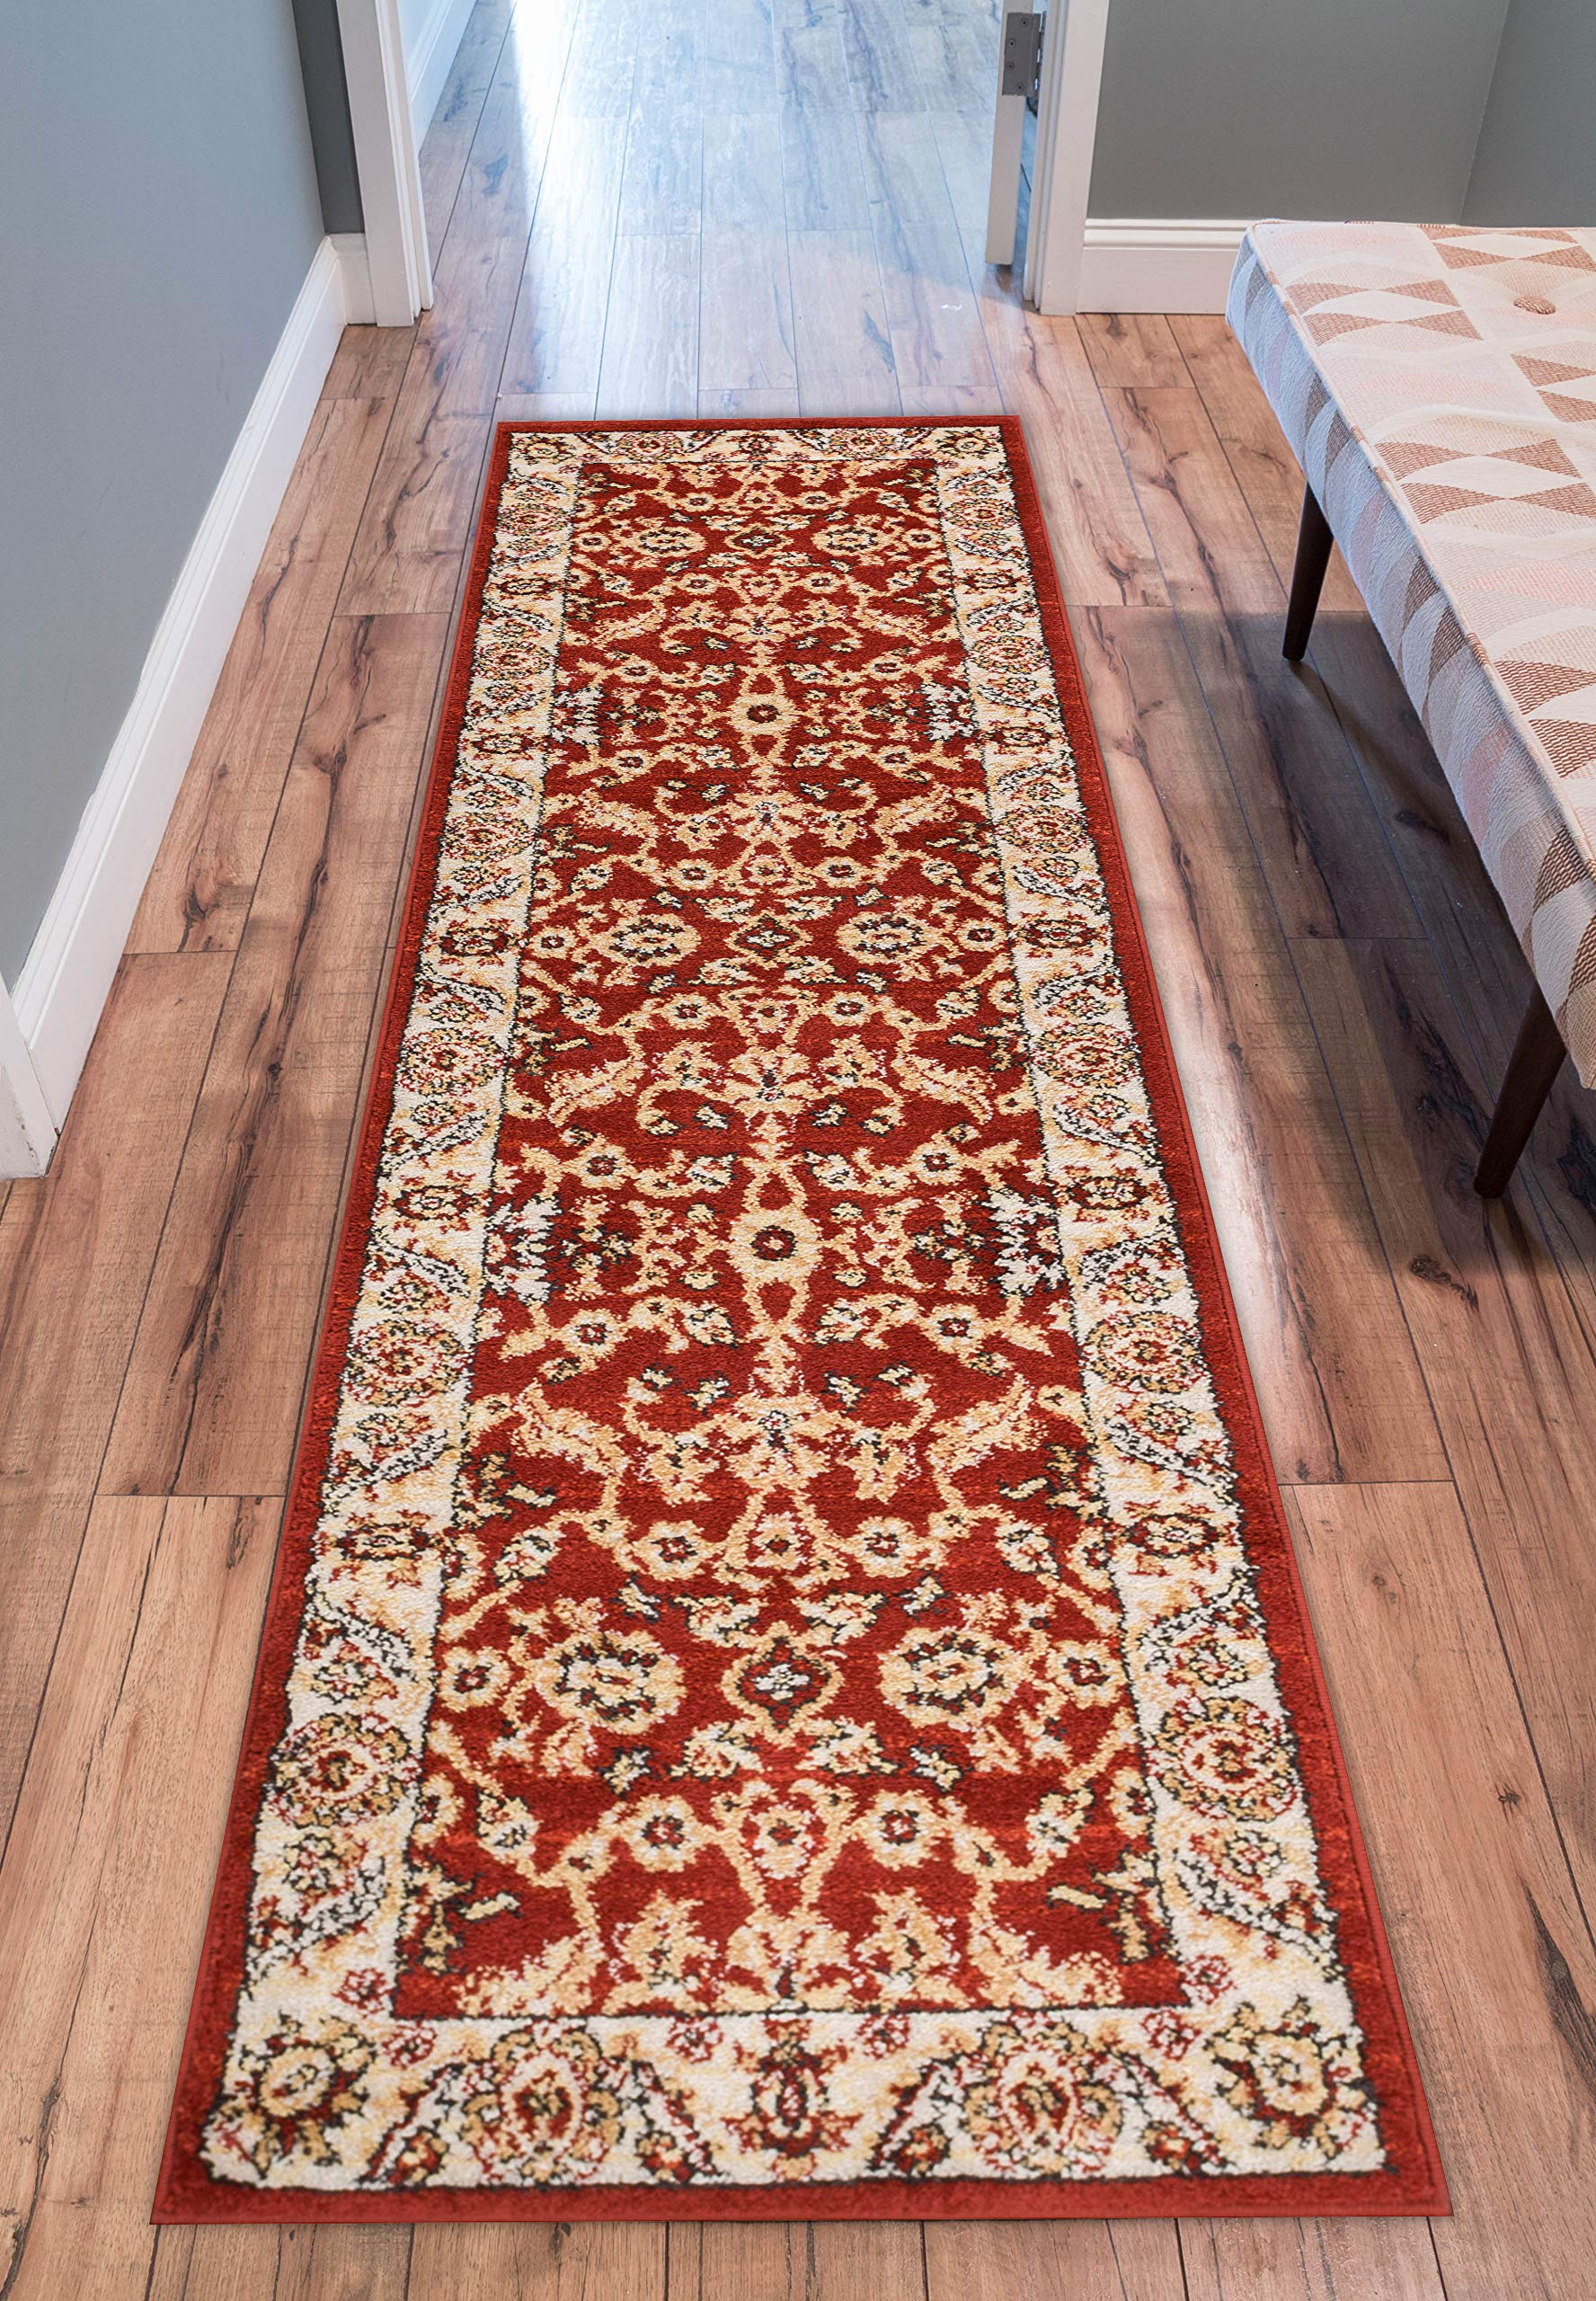 Well Woven 22902 Sydney Vintage Carleton Red Traditional French Country Oriental Area Rug 2'3'' x 7'3'' Runner